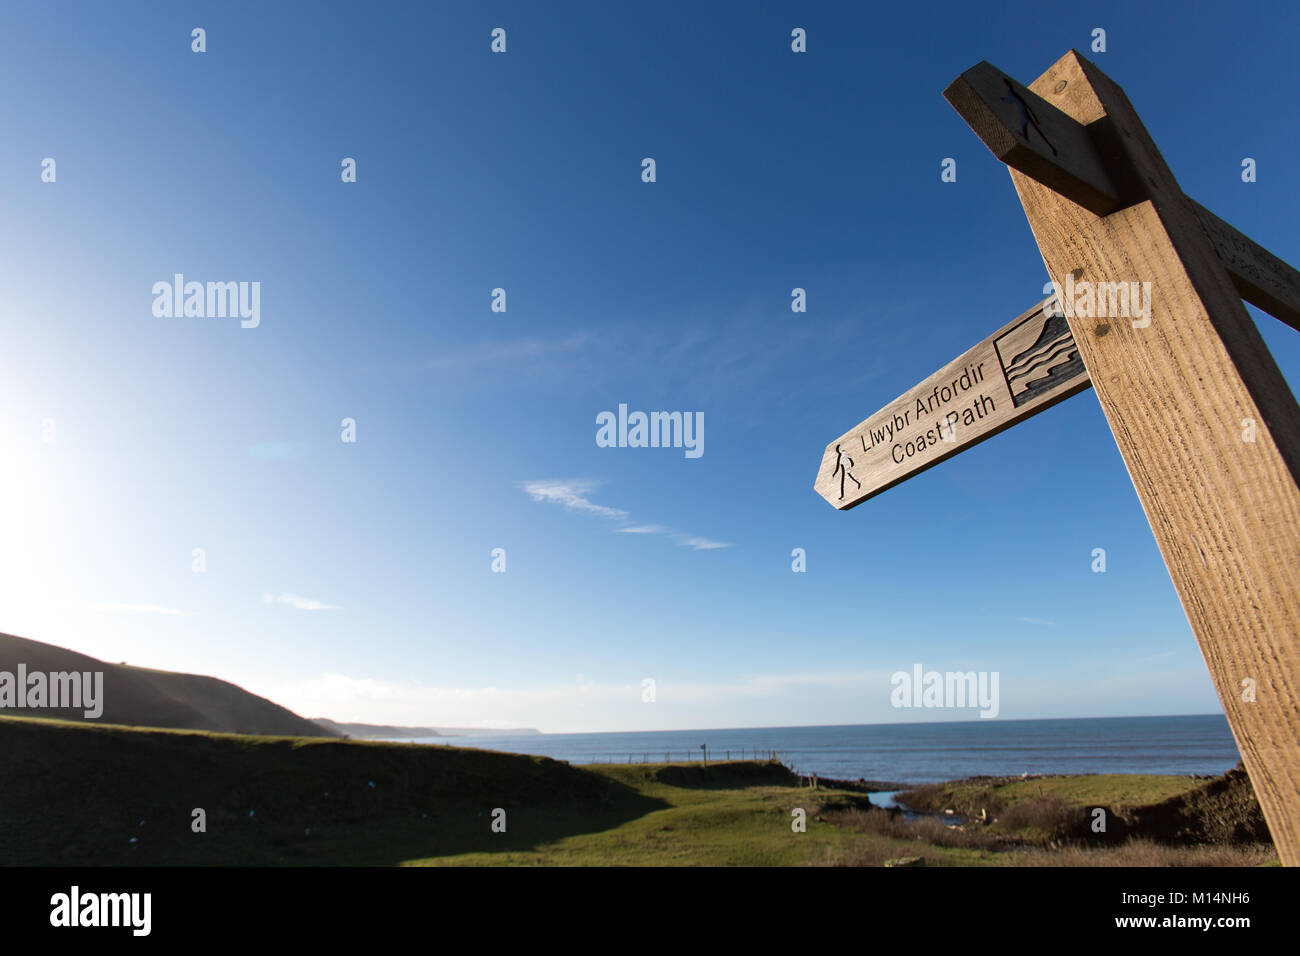 The Wales and Ceredigion Coast Path. A Wales and Ceredigion Coast Path route sign, located between the villages - Stock Image